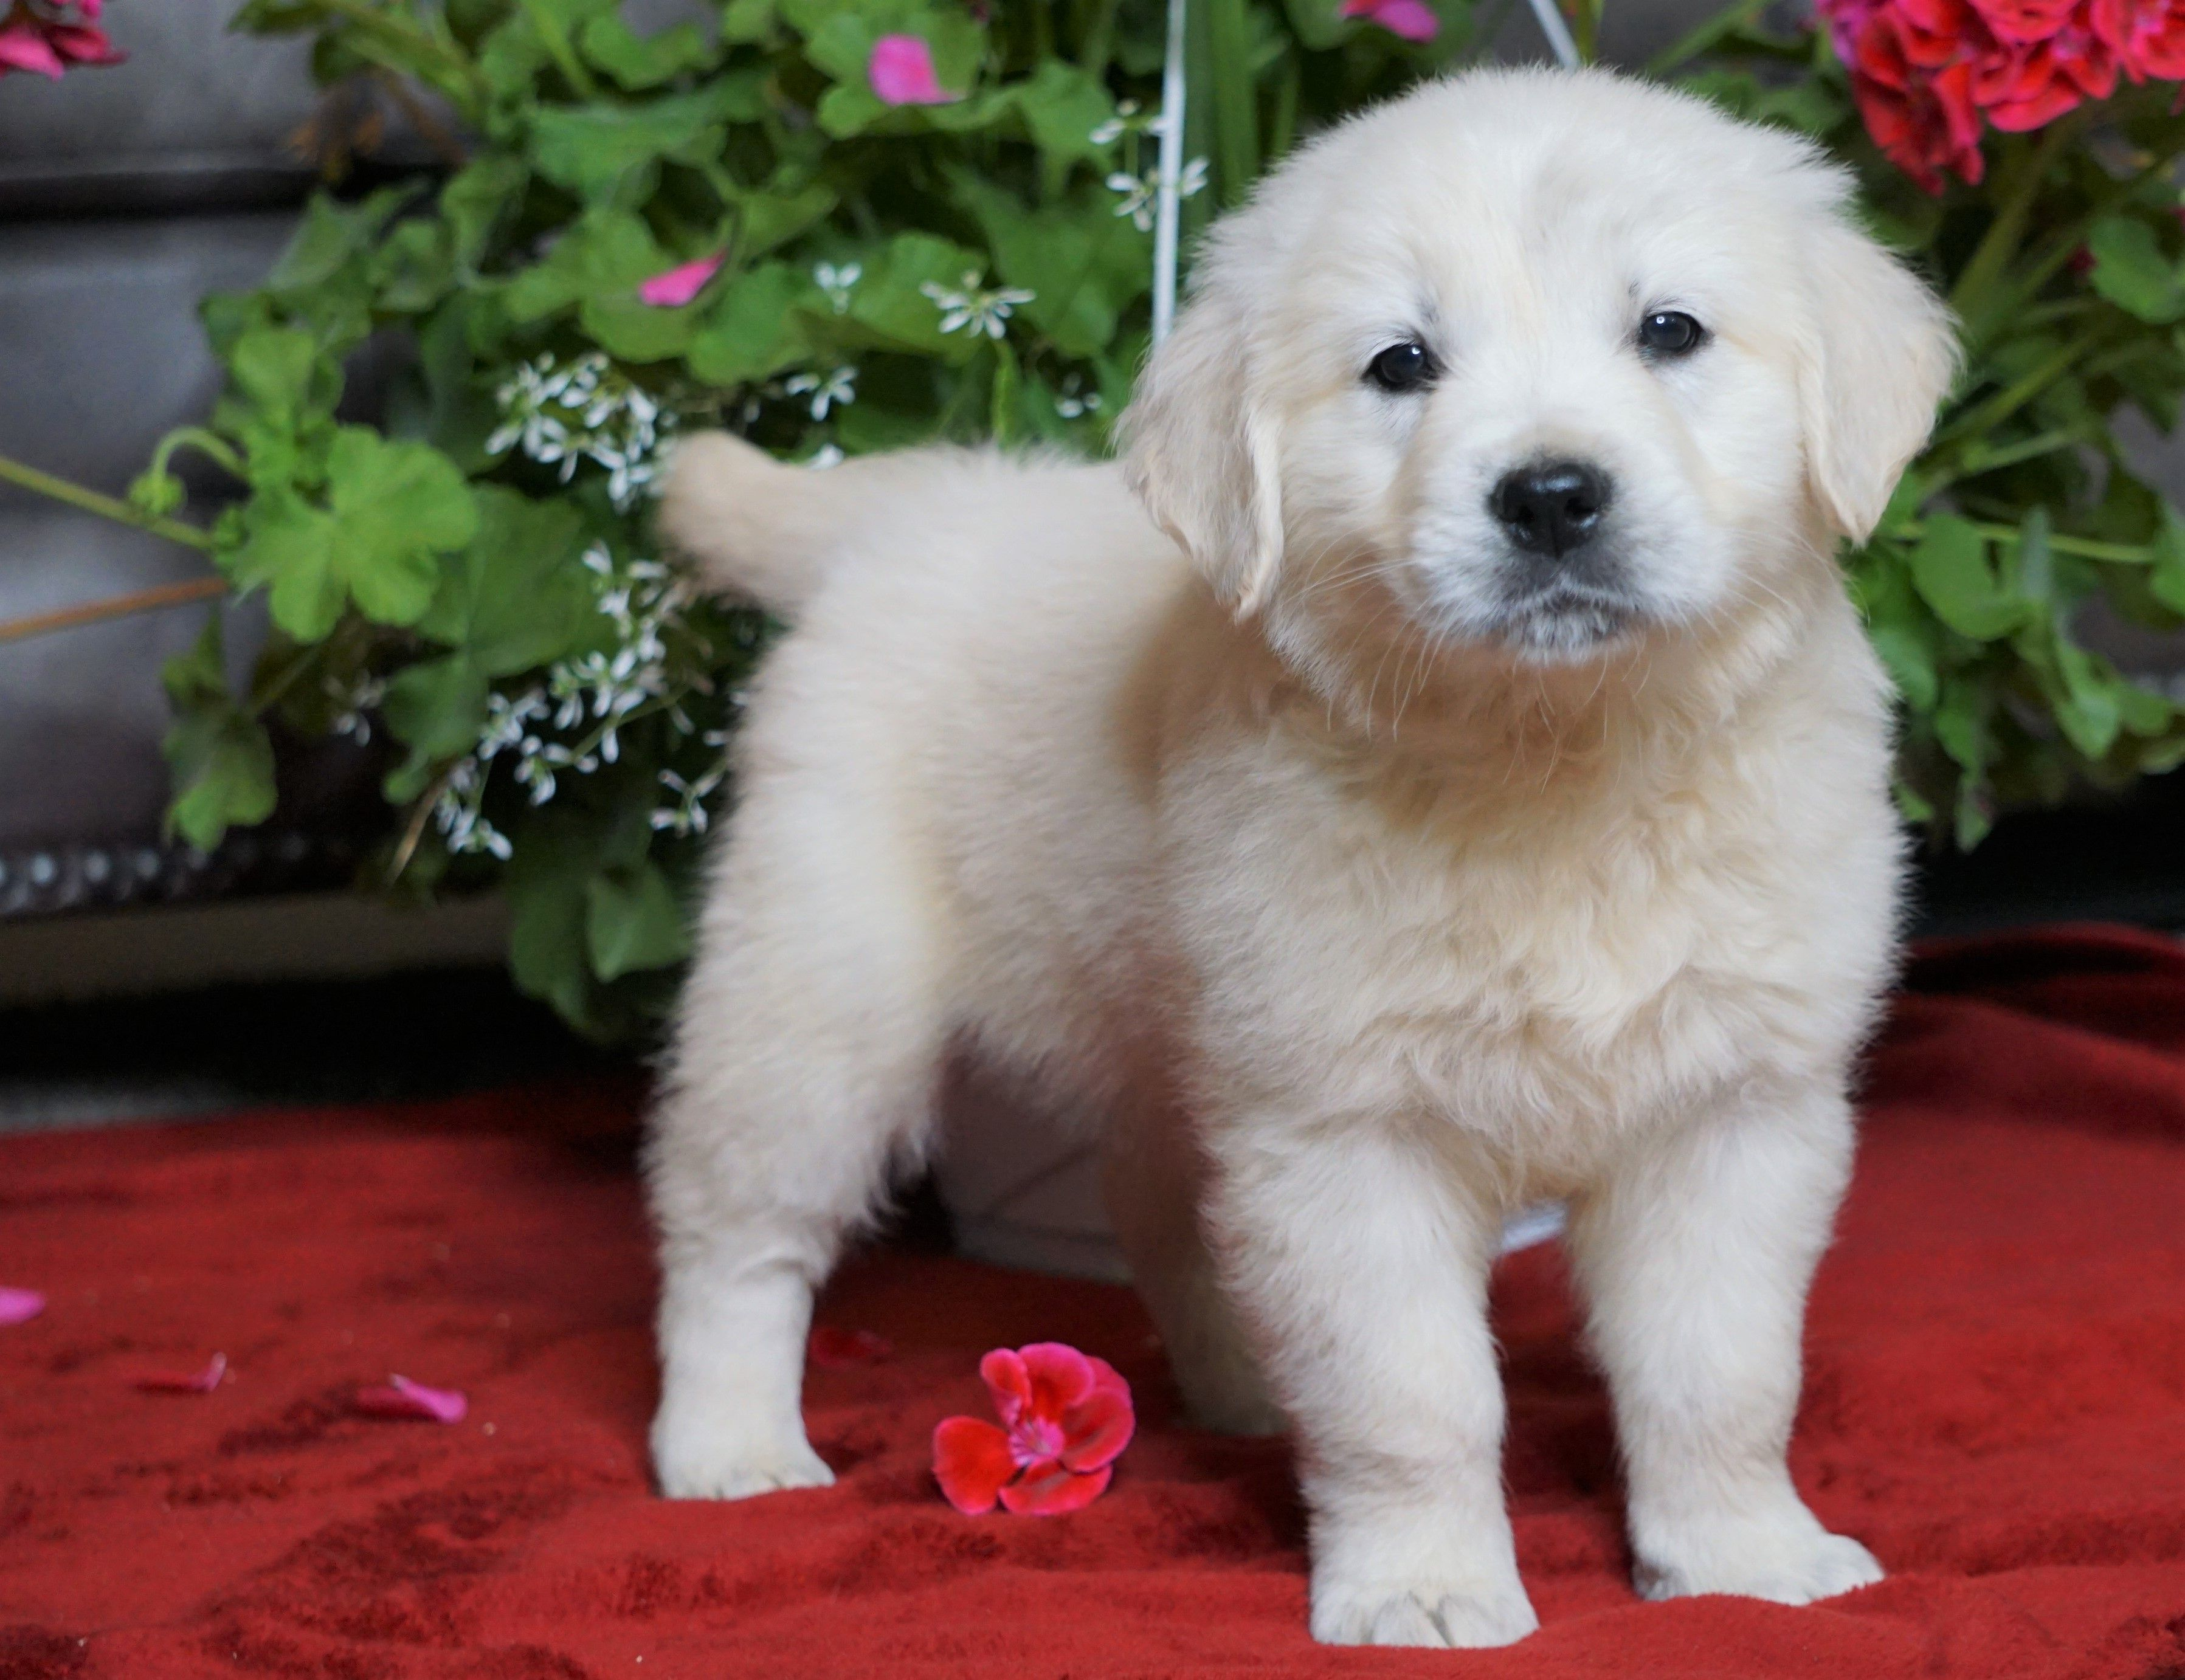 Puppies for Sale Golden puppies, Lancaster puppies, Puppies